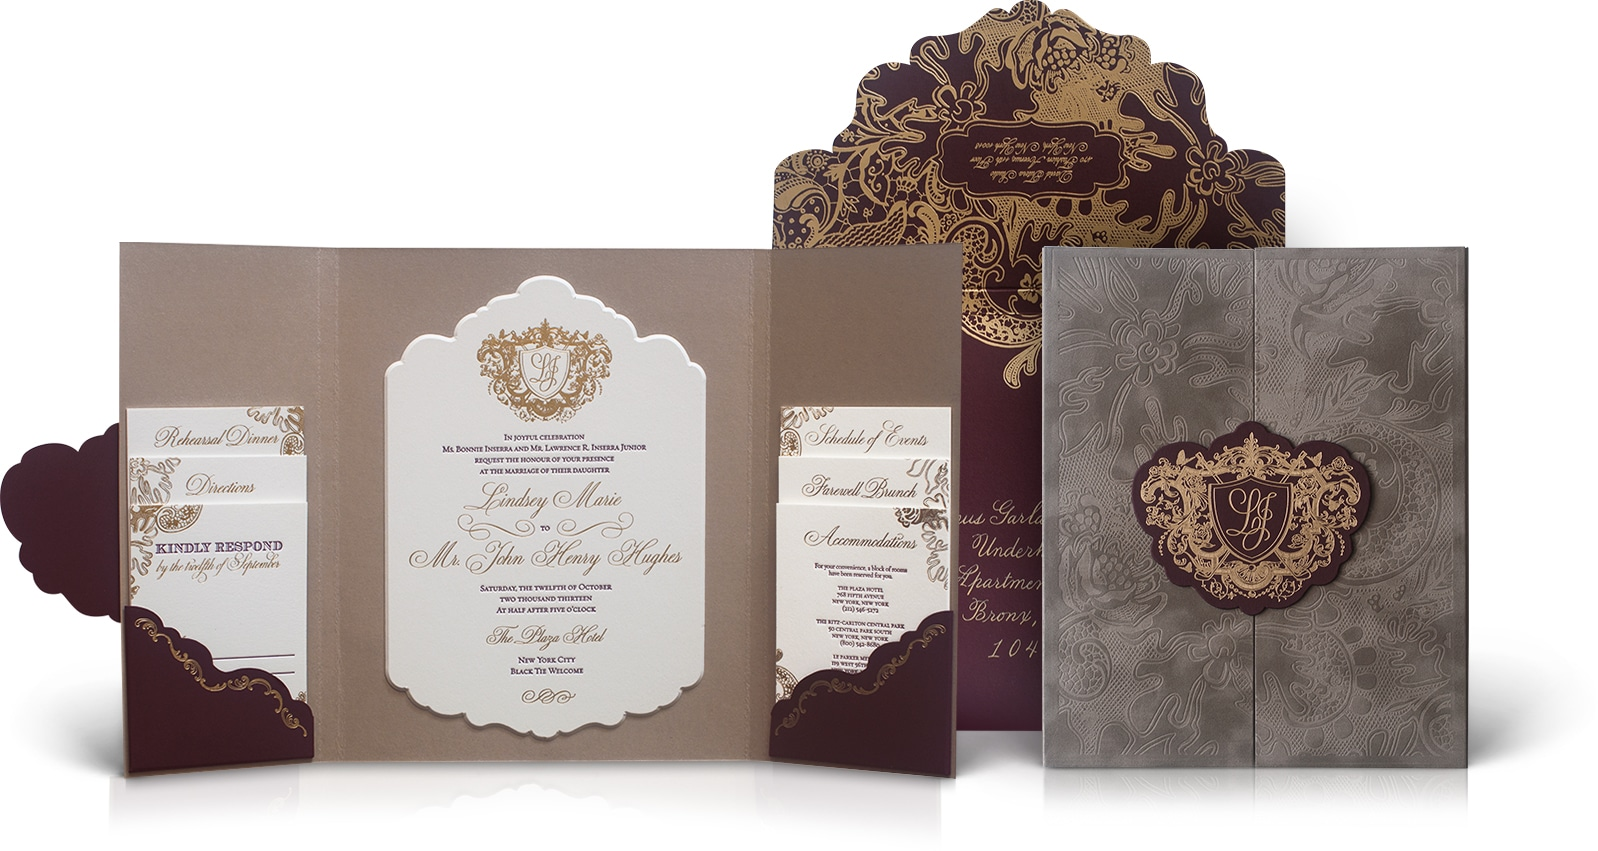 The Plaza wedding invitation